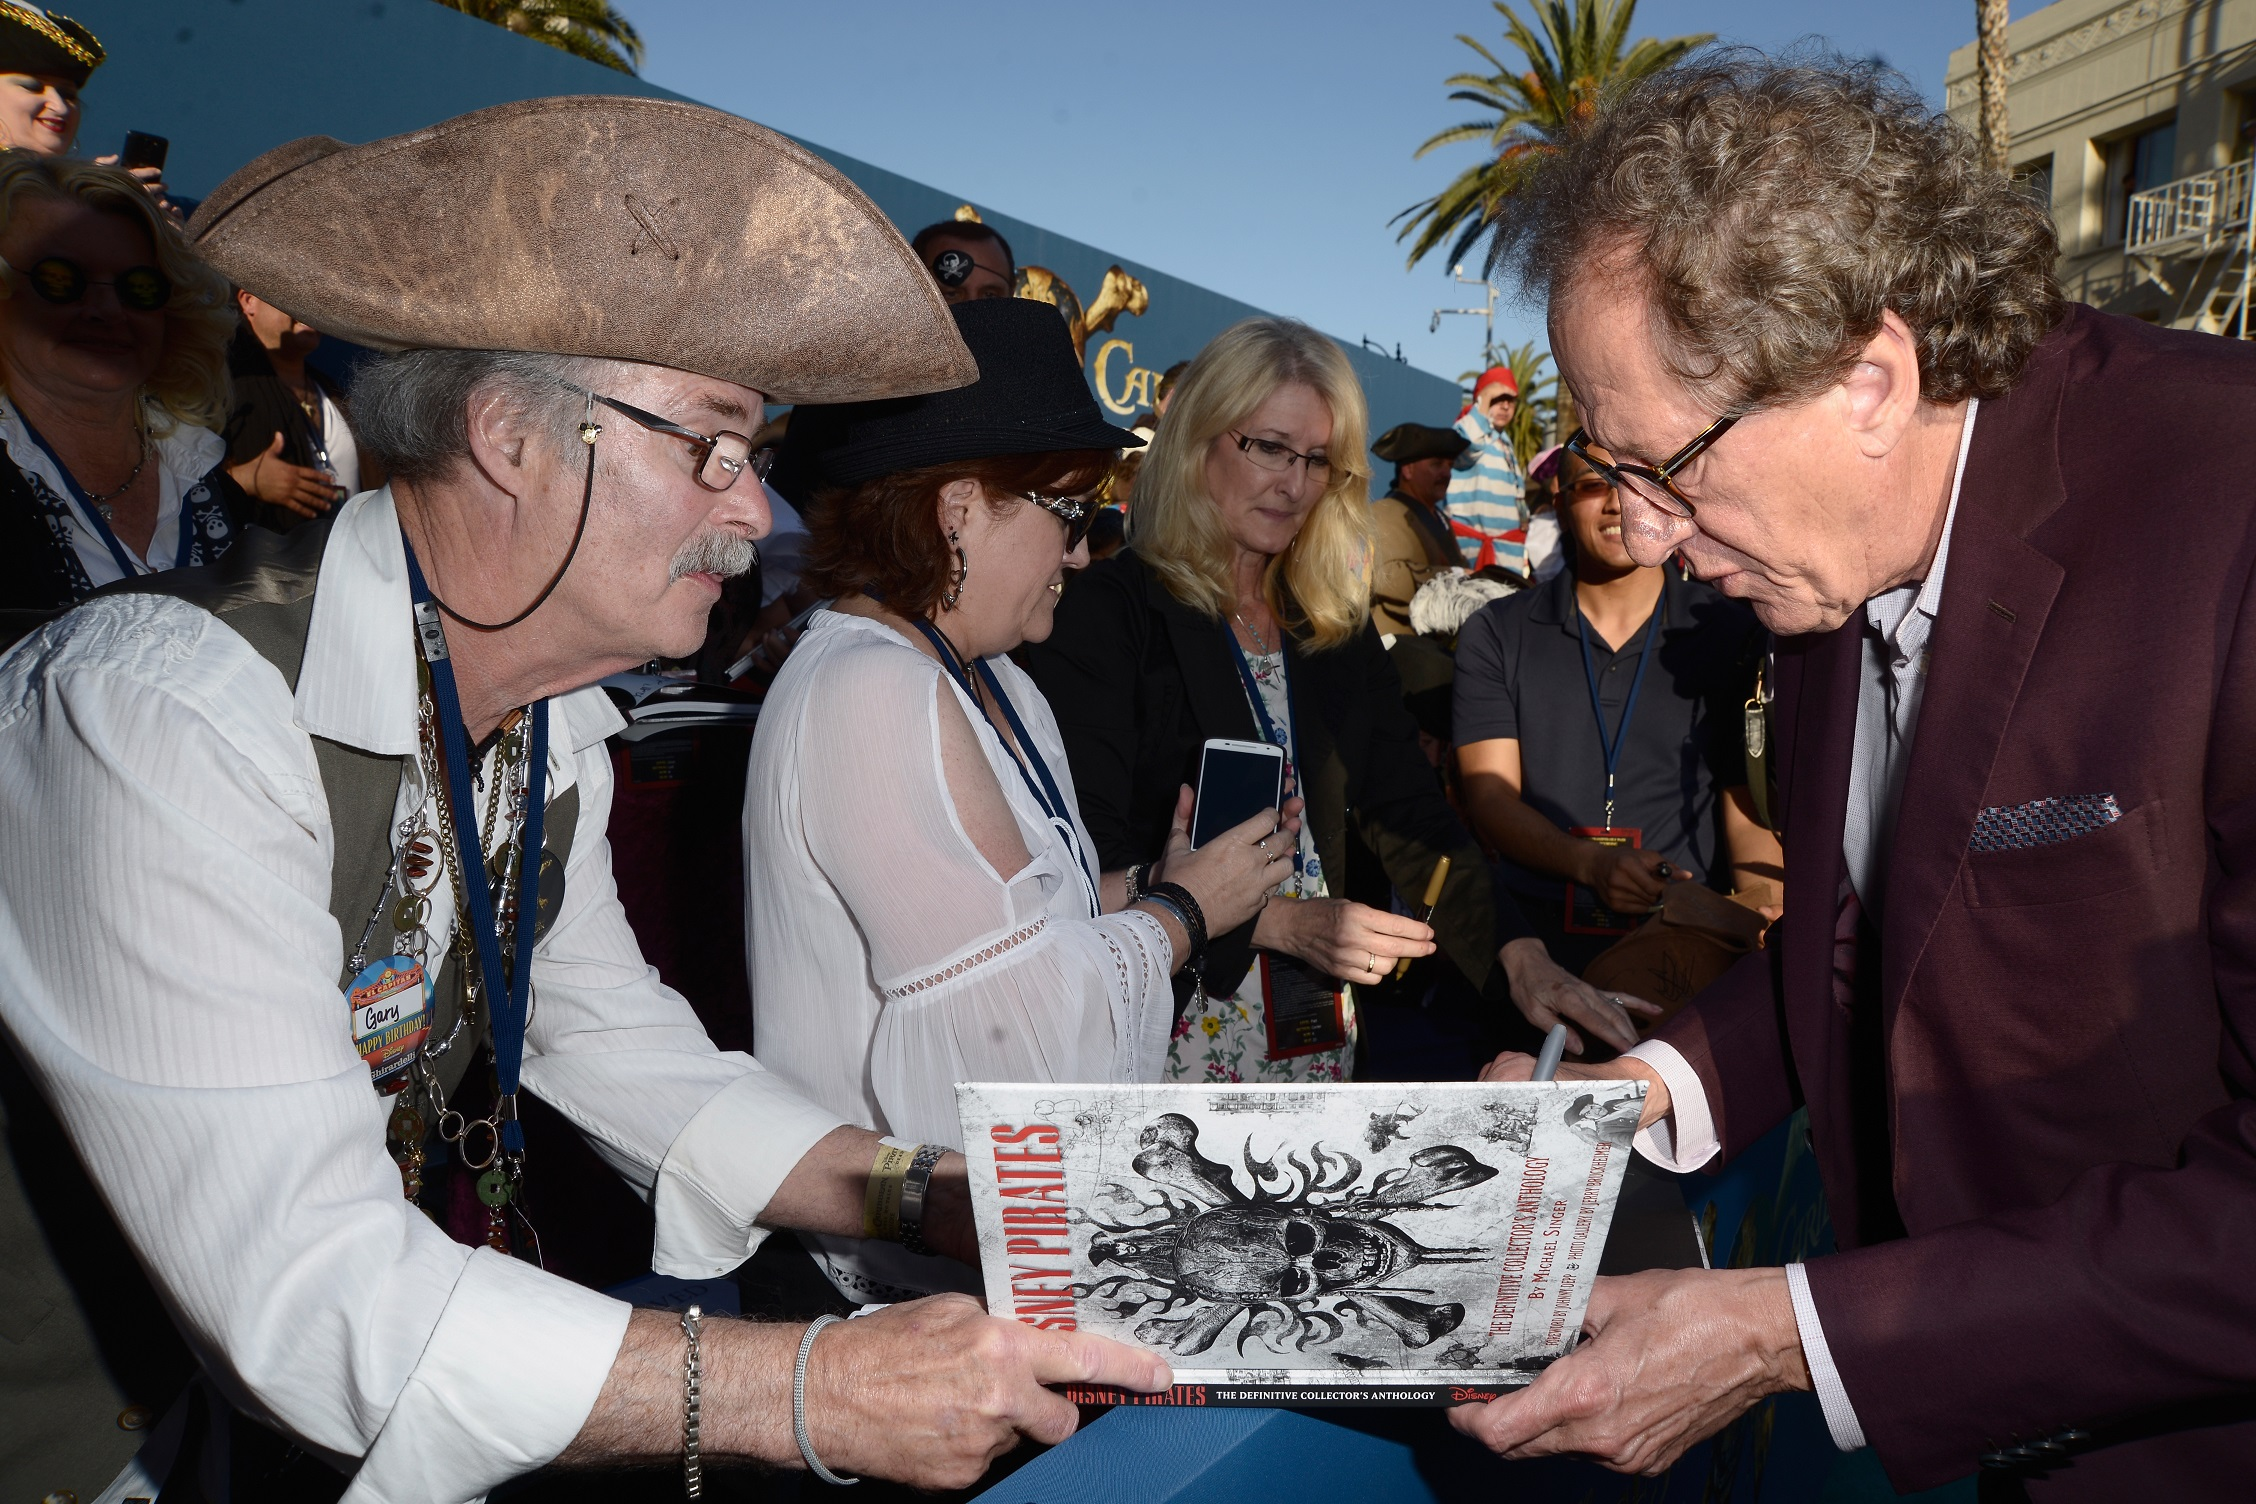 Setting Sail on the PIRATES OF THE CARIBBEAN: DEAD MEN TELL NO TALES Red Carpet